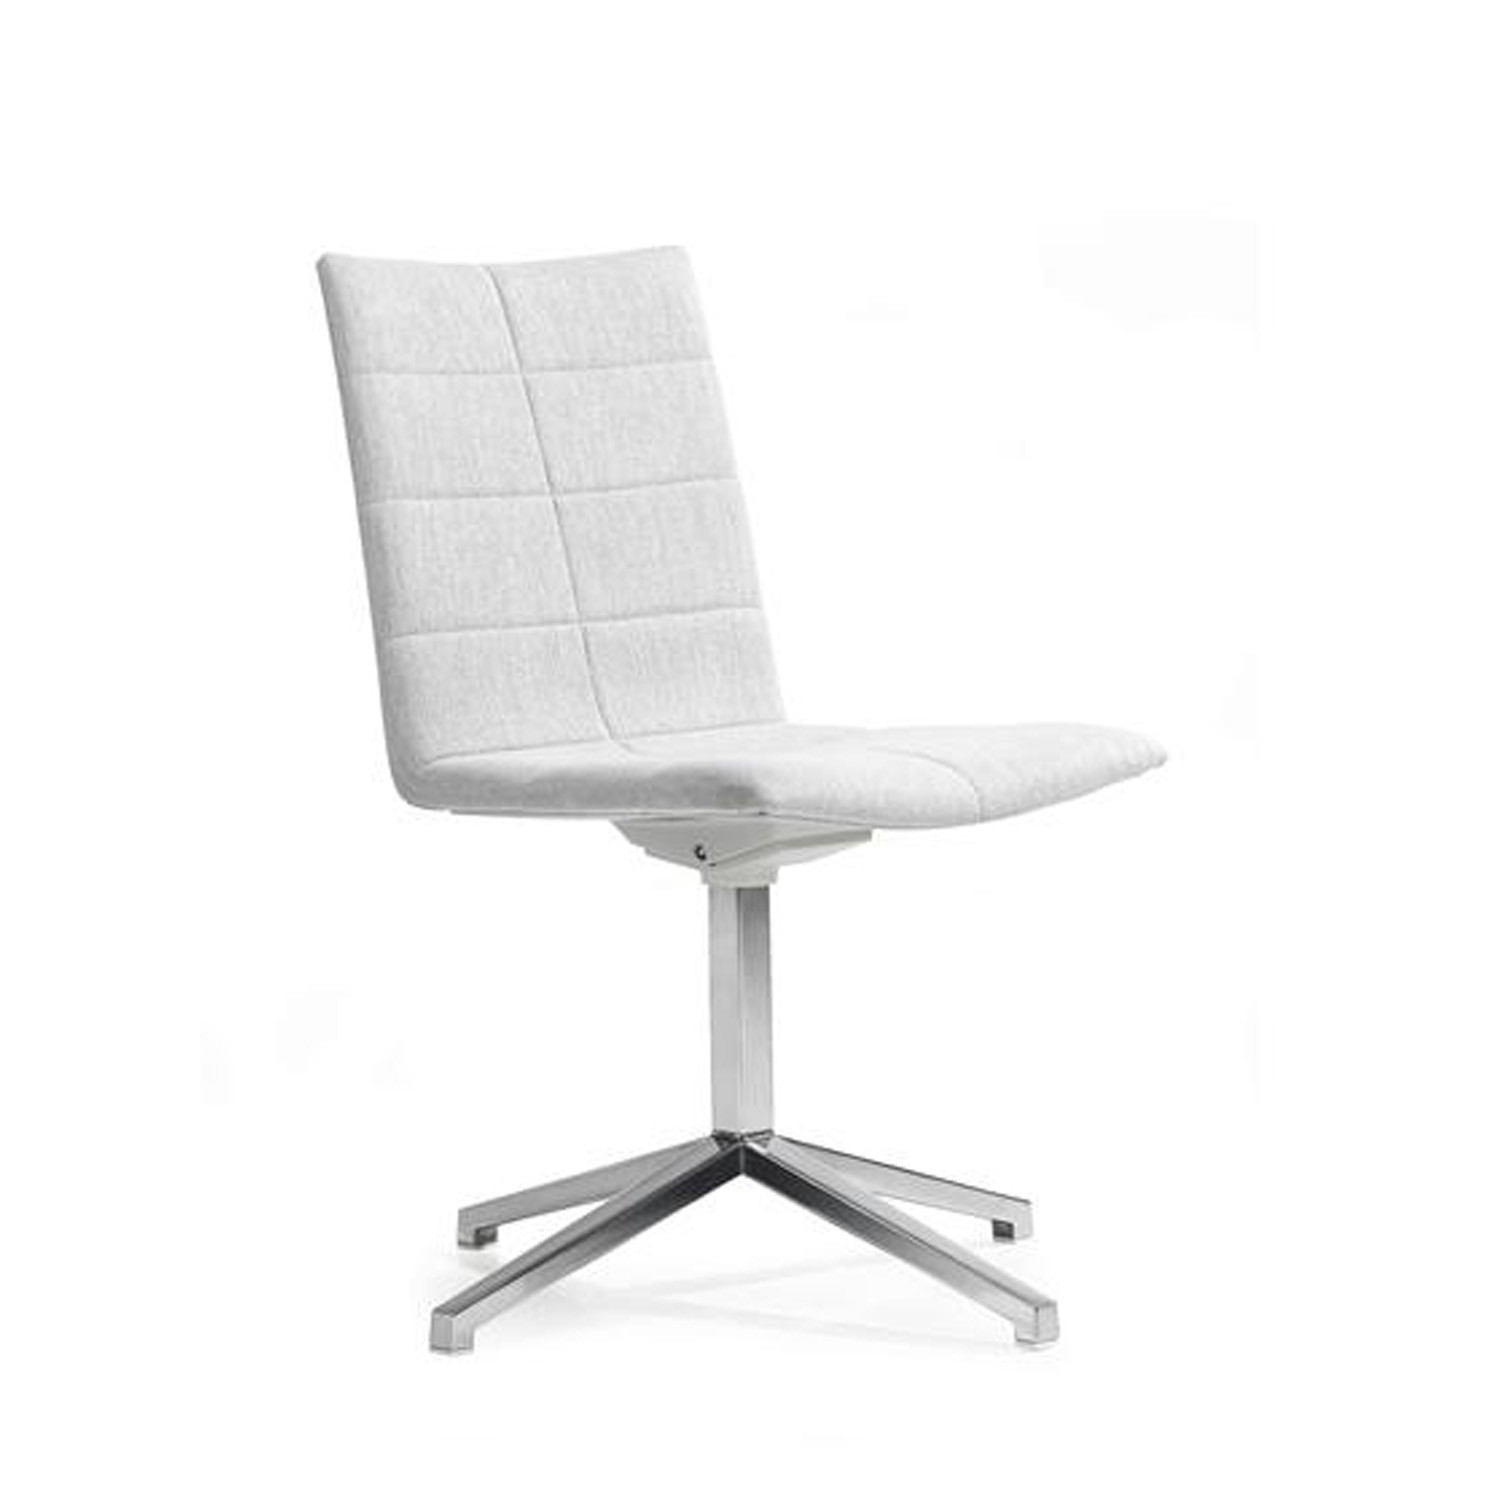 Archal Upholstered Chair on 4-Star Base